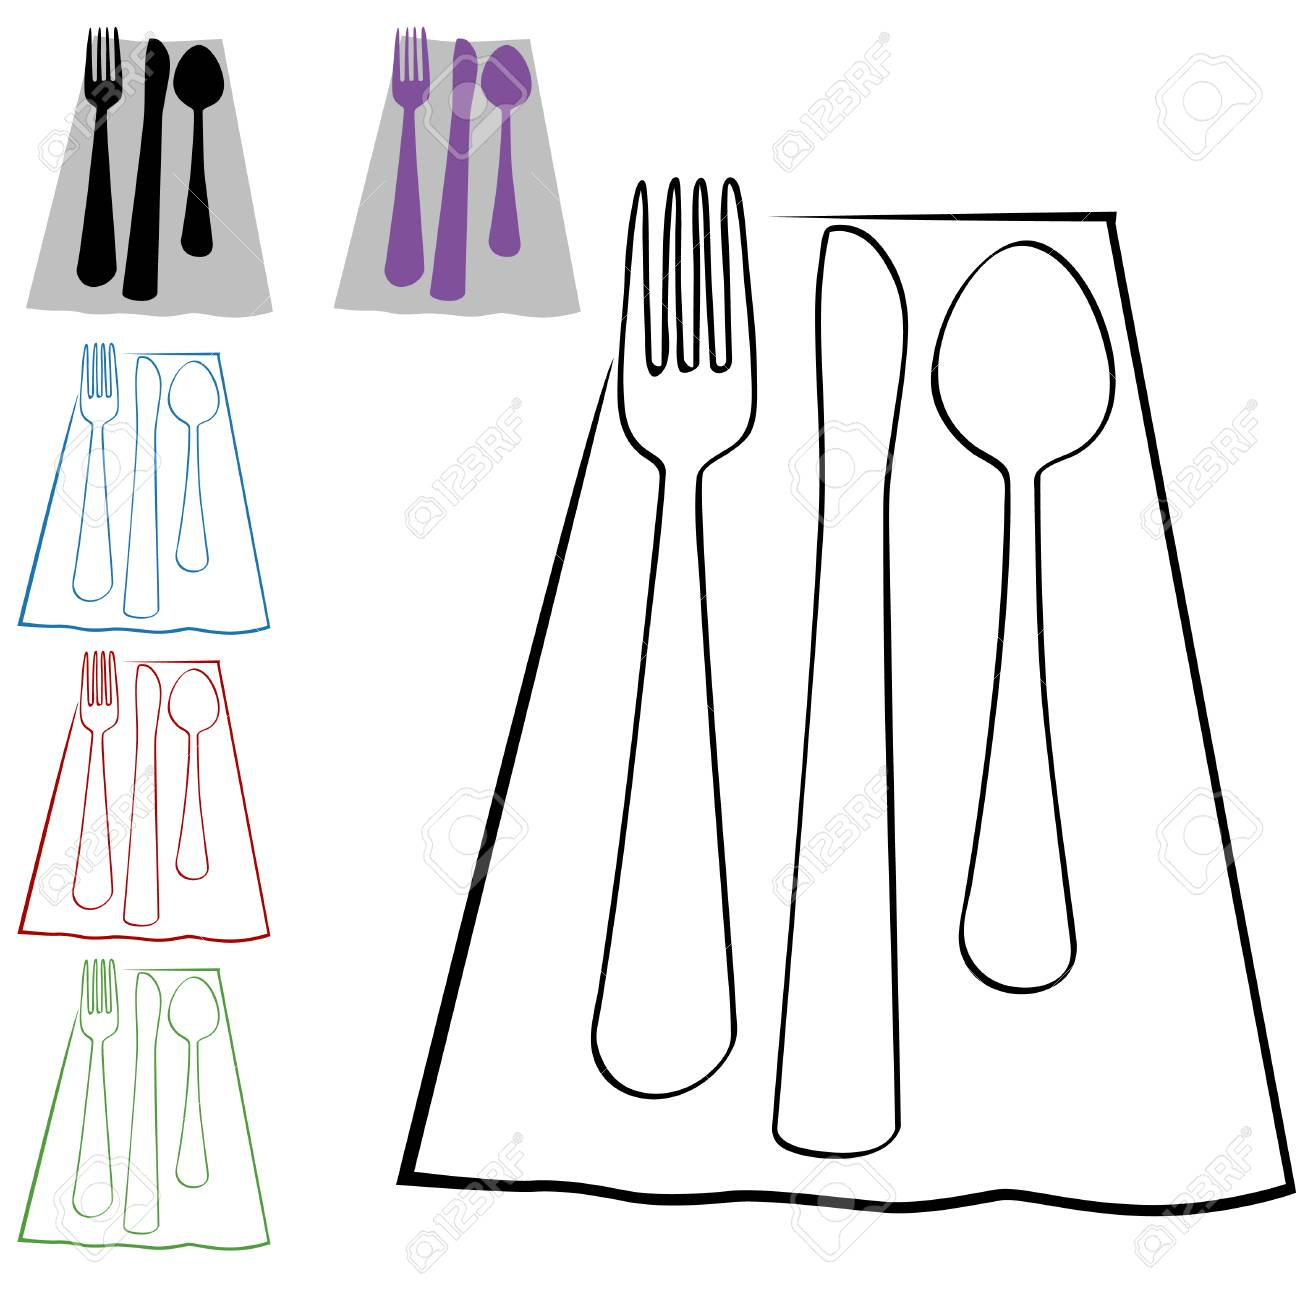 Place Setting Set Stock Vector - 7494383